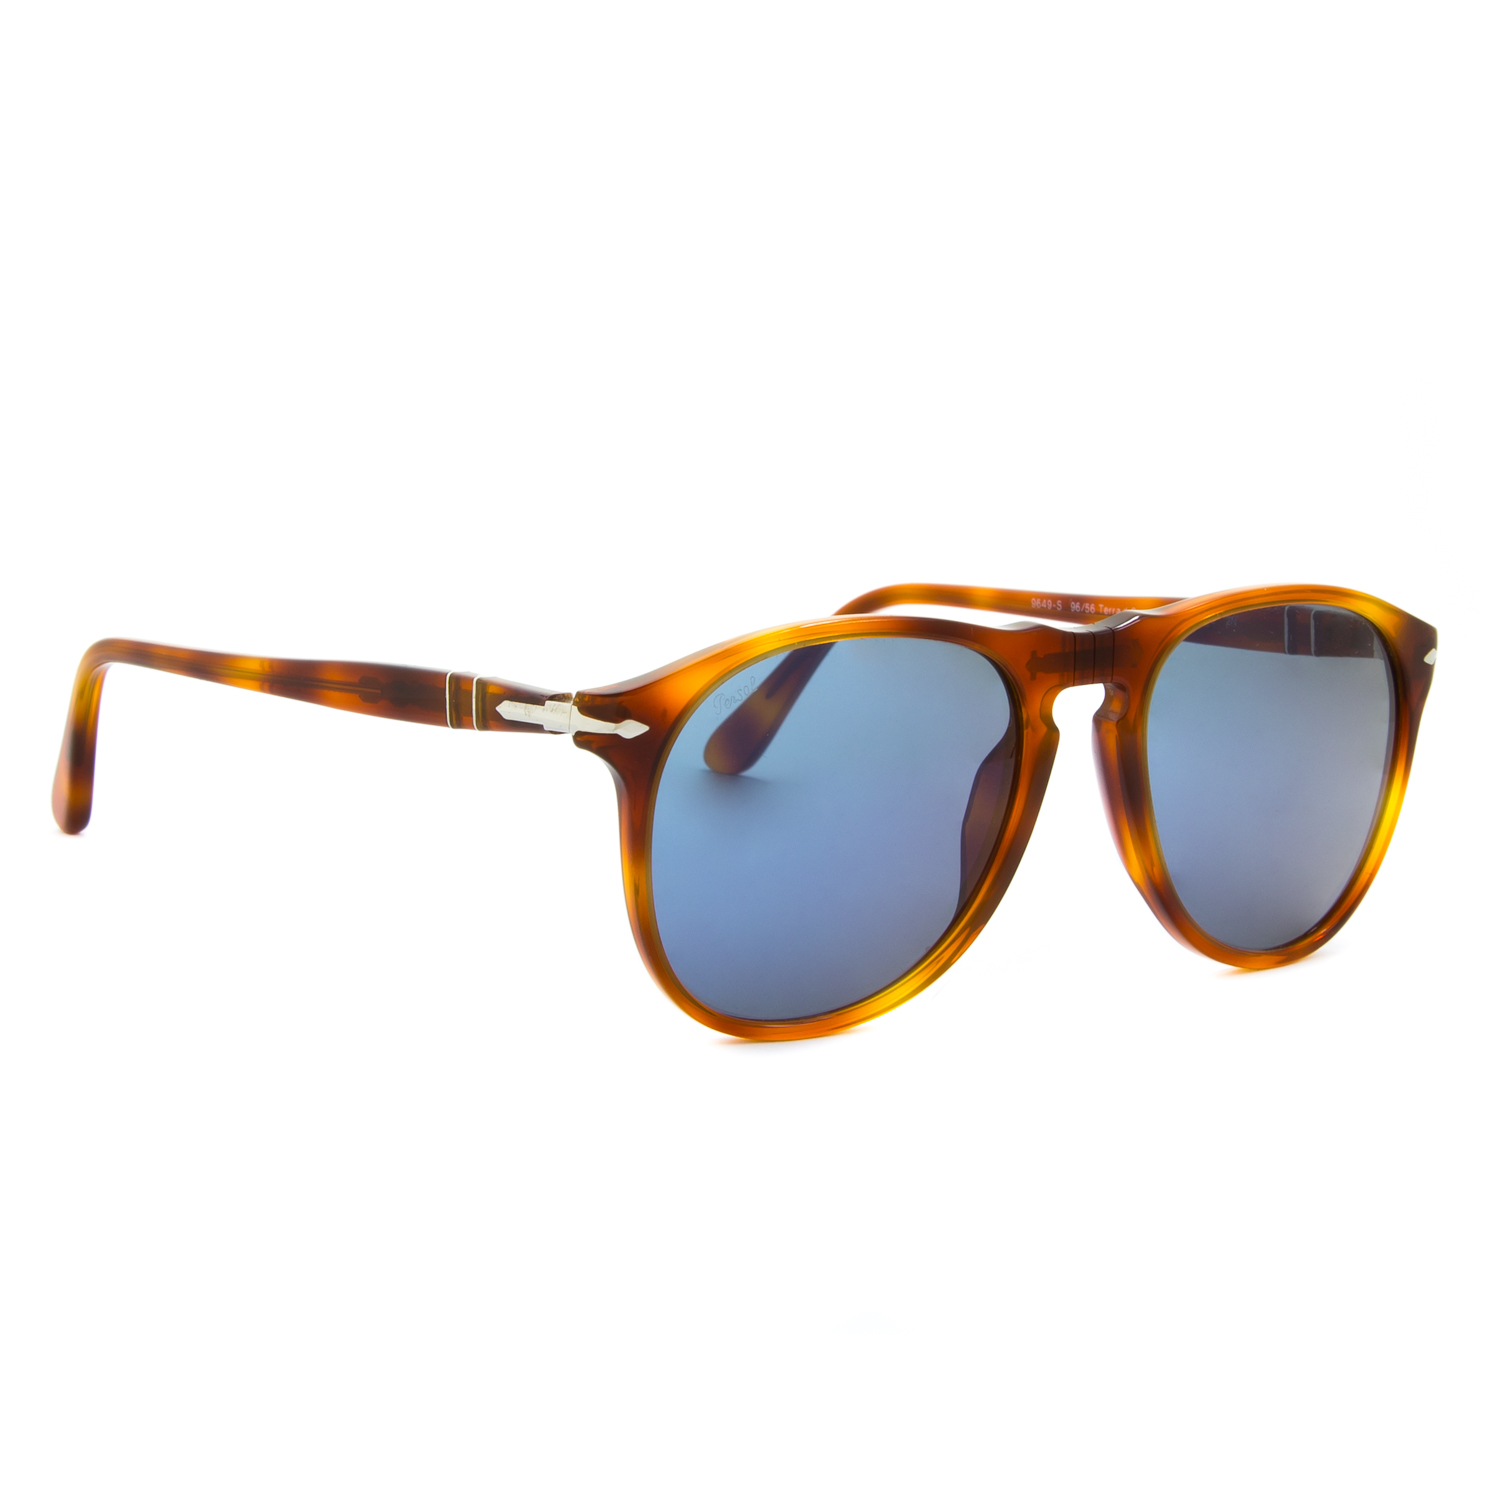 5a643780b9 Persol 9649 Aviator Sunglasses 96 56 Terra Di Siena Light Havana ...